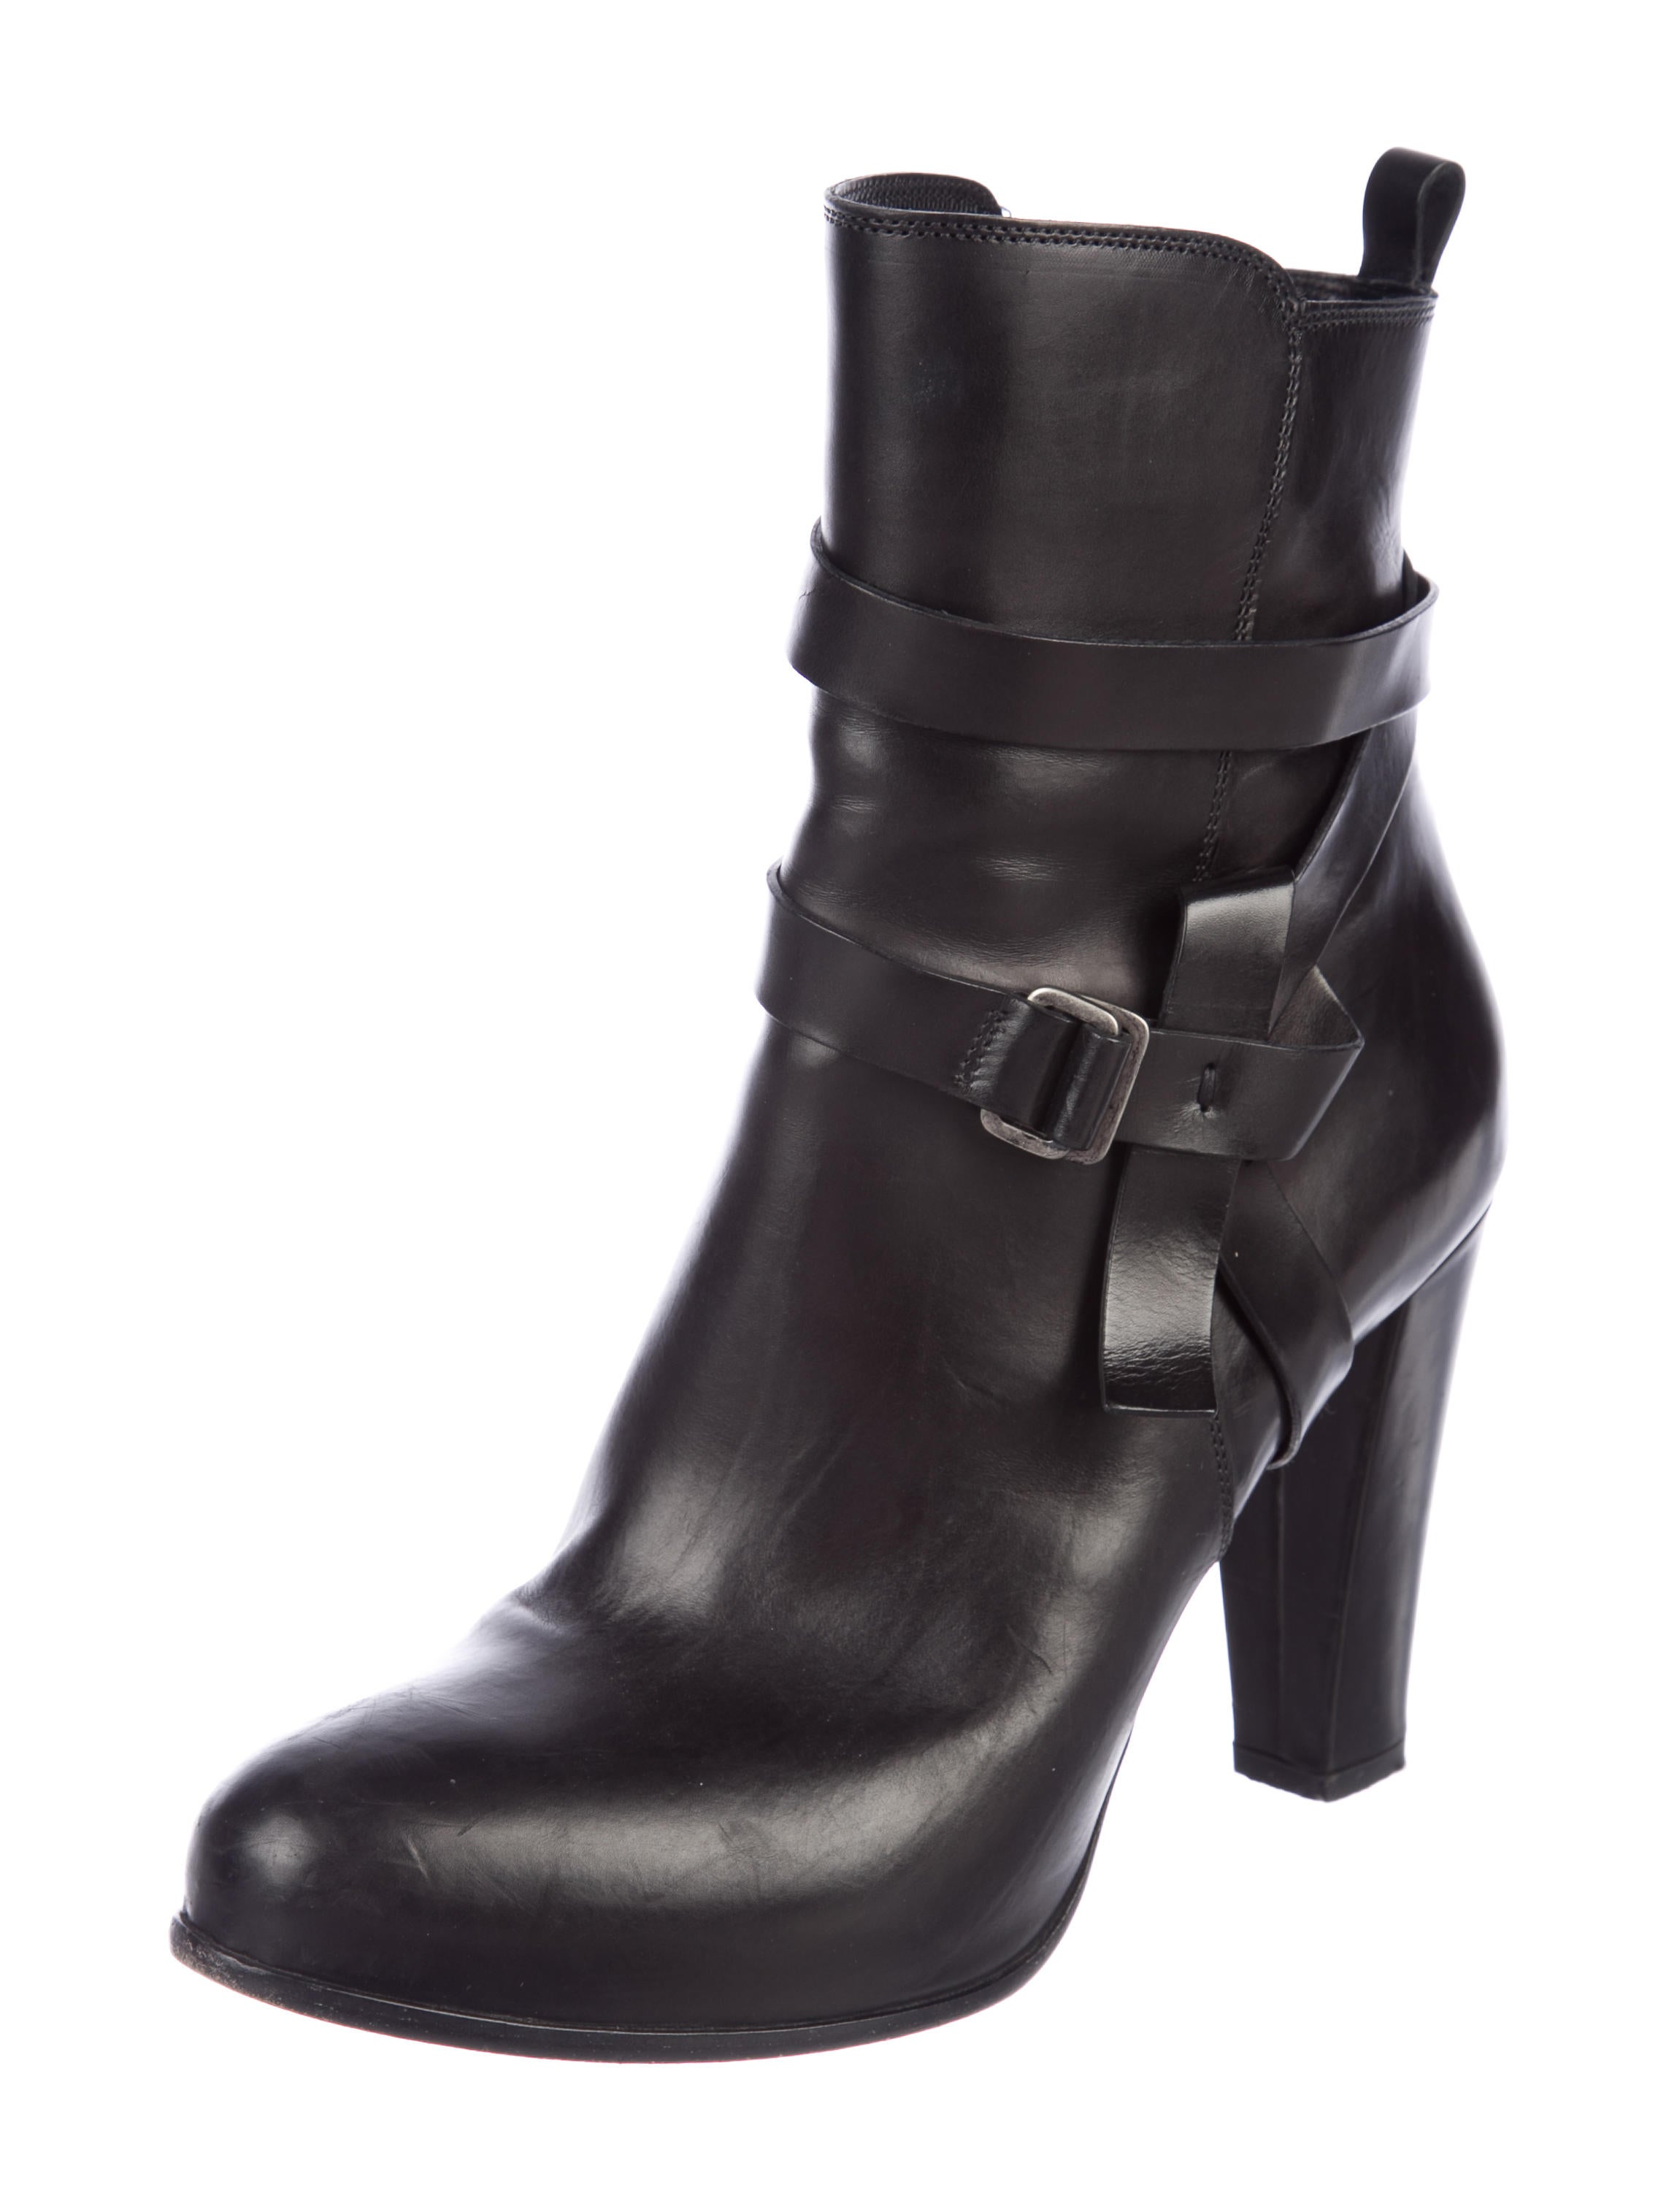 Sartore Leather Round-Toe Ankle Boots geniue stockist 5dkQhC